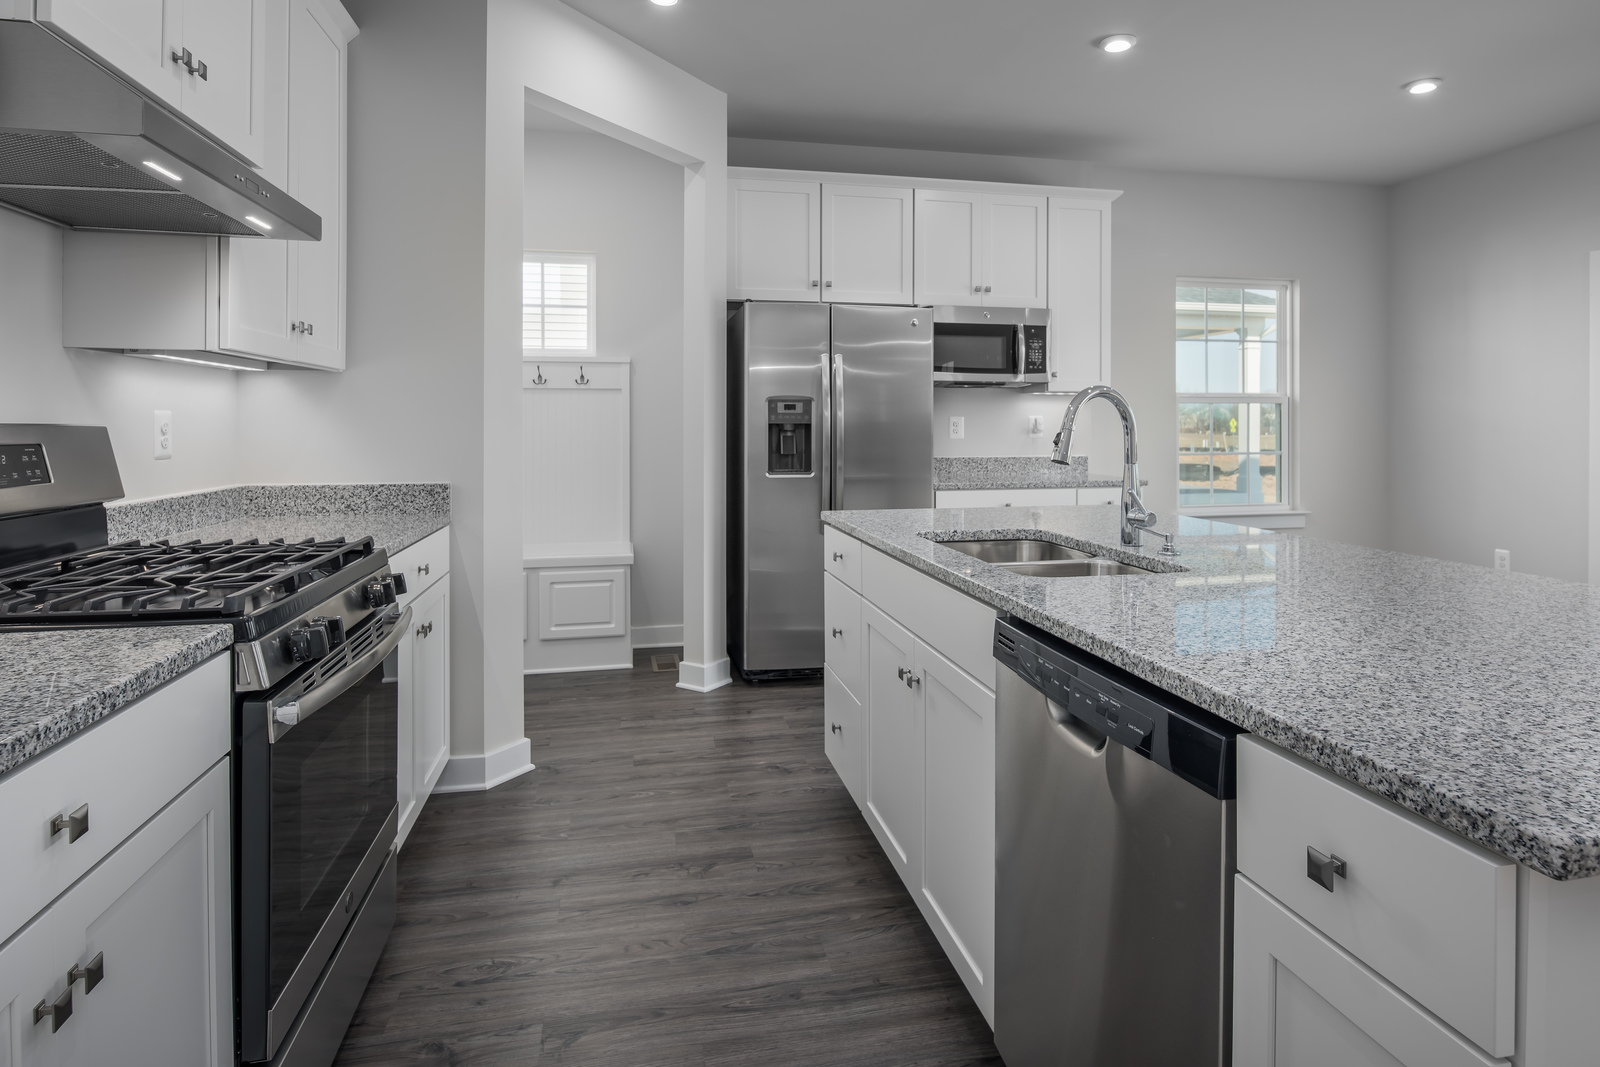 New Homes For Sale At Riverwood On The Rivanna In Charlottesville